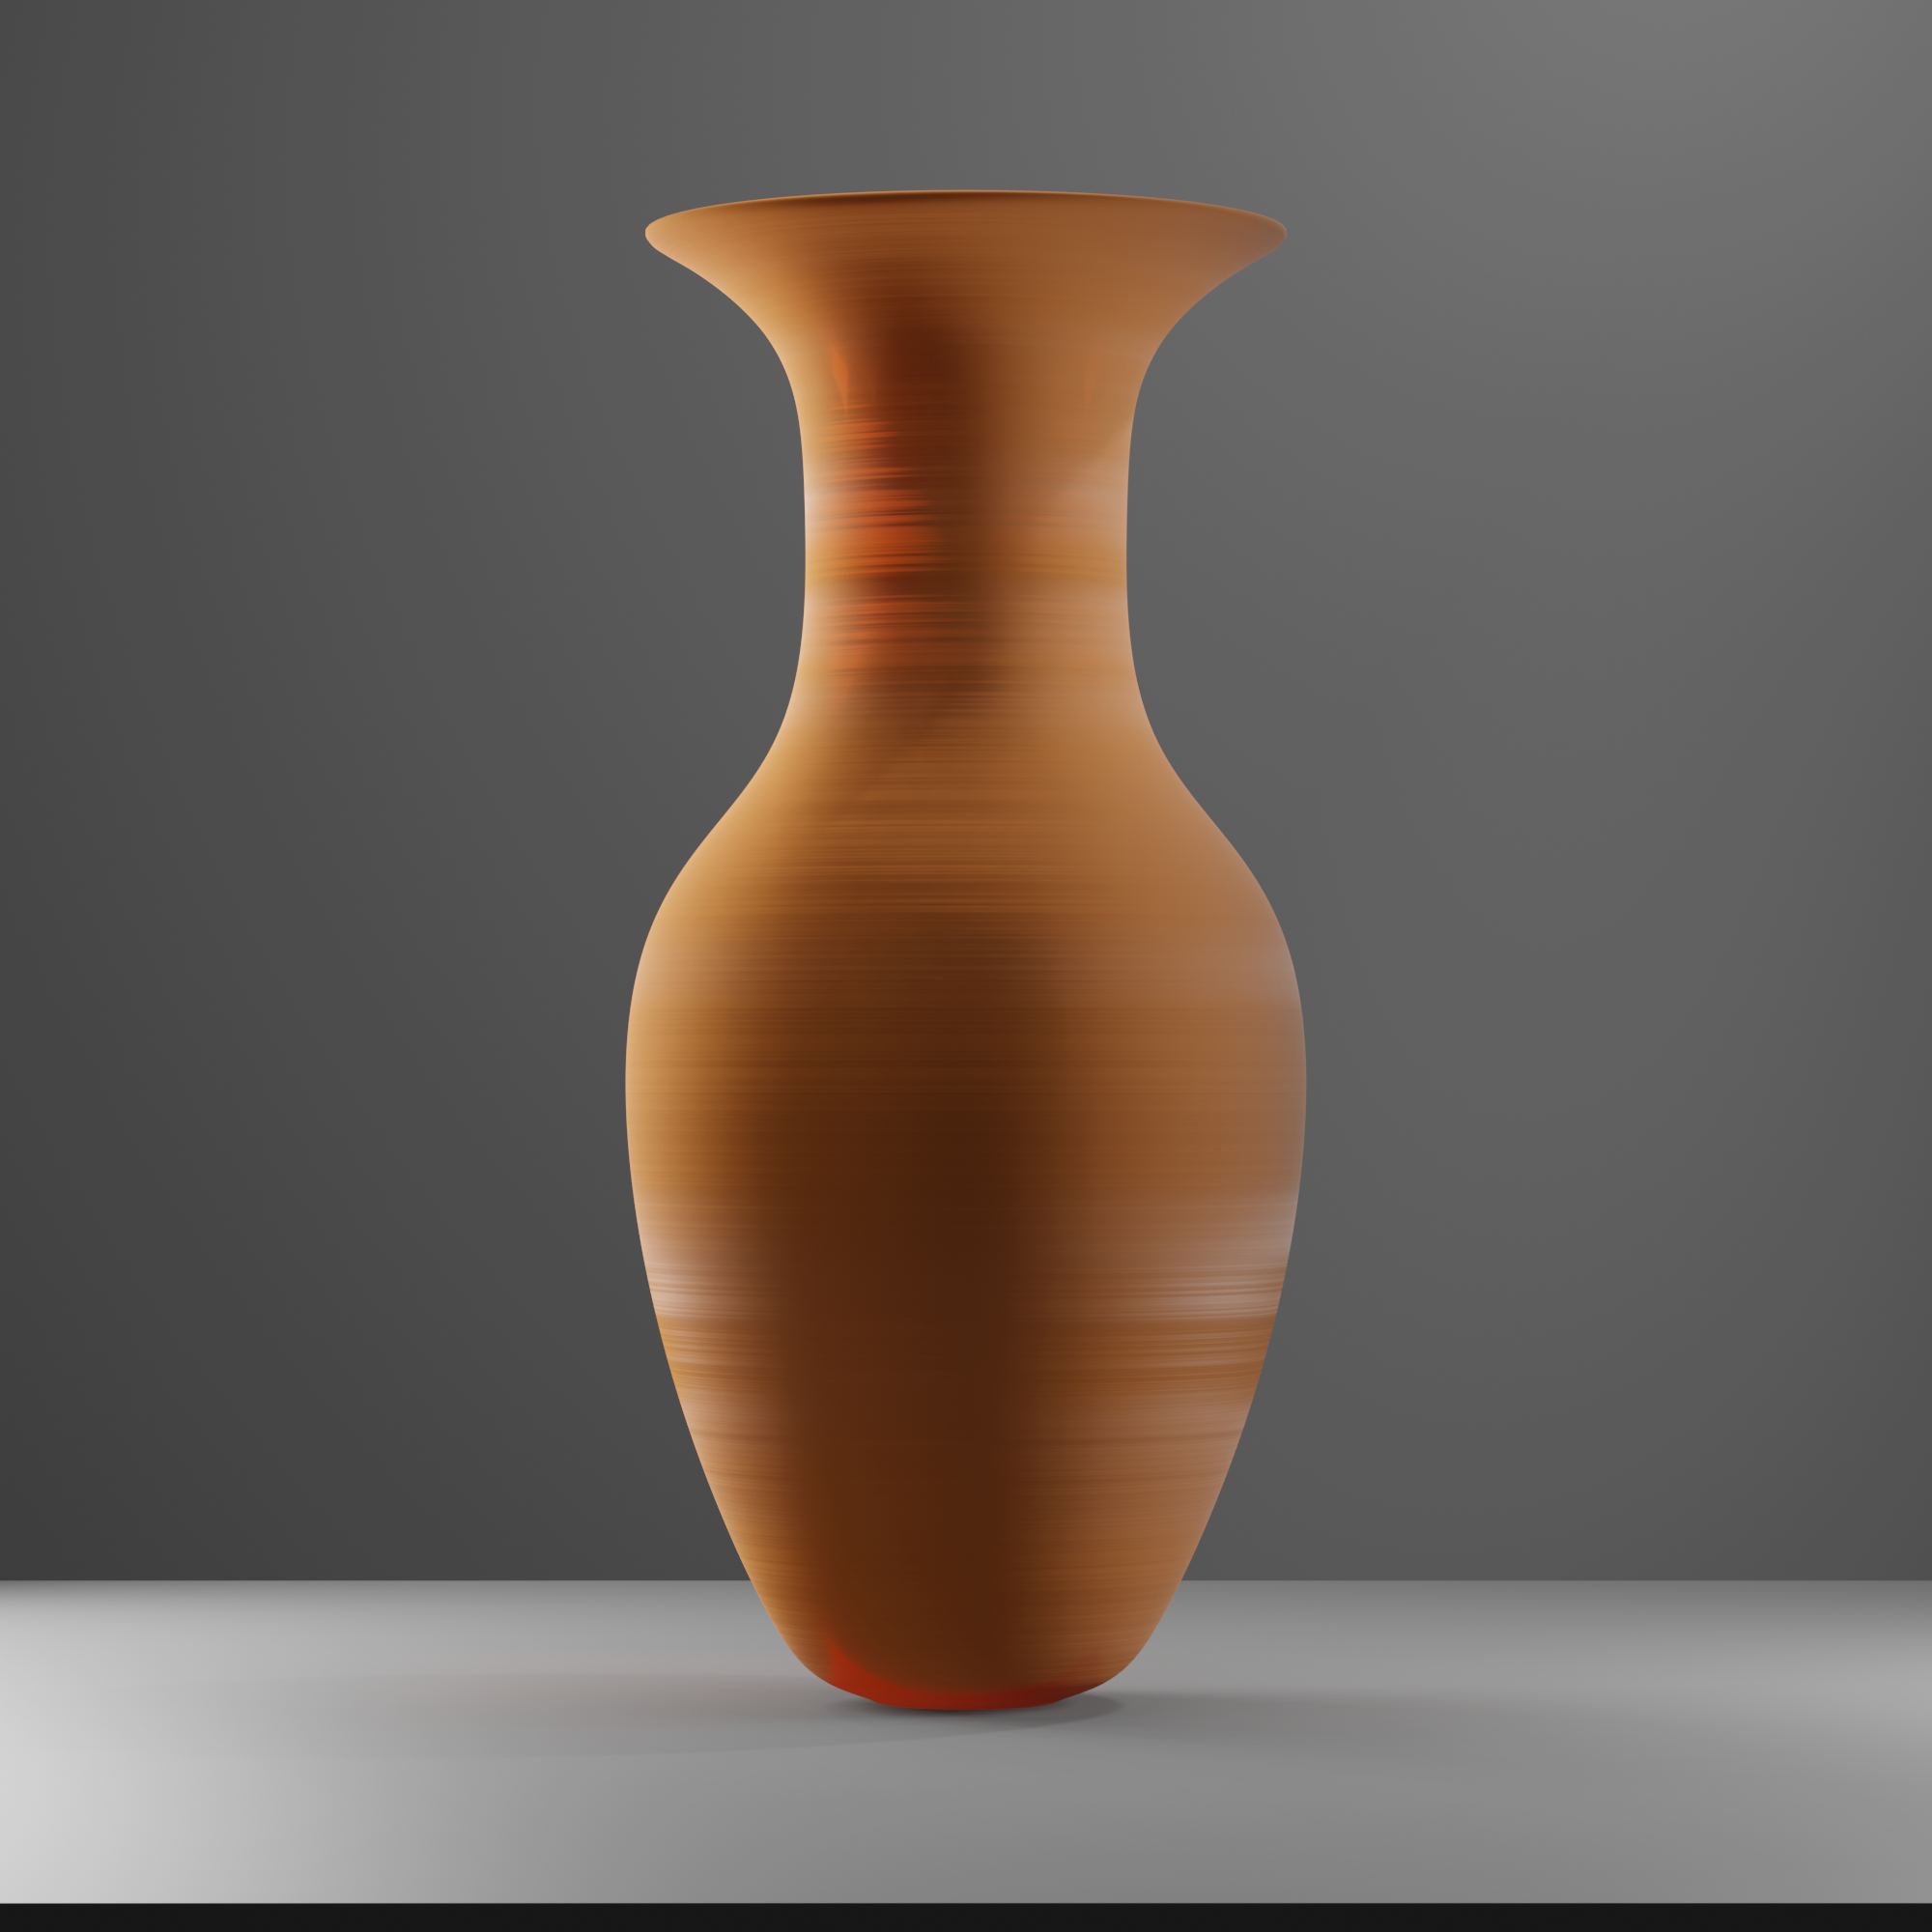 Pack of vases preview image 3